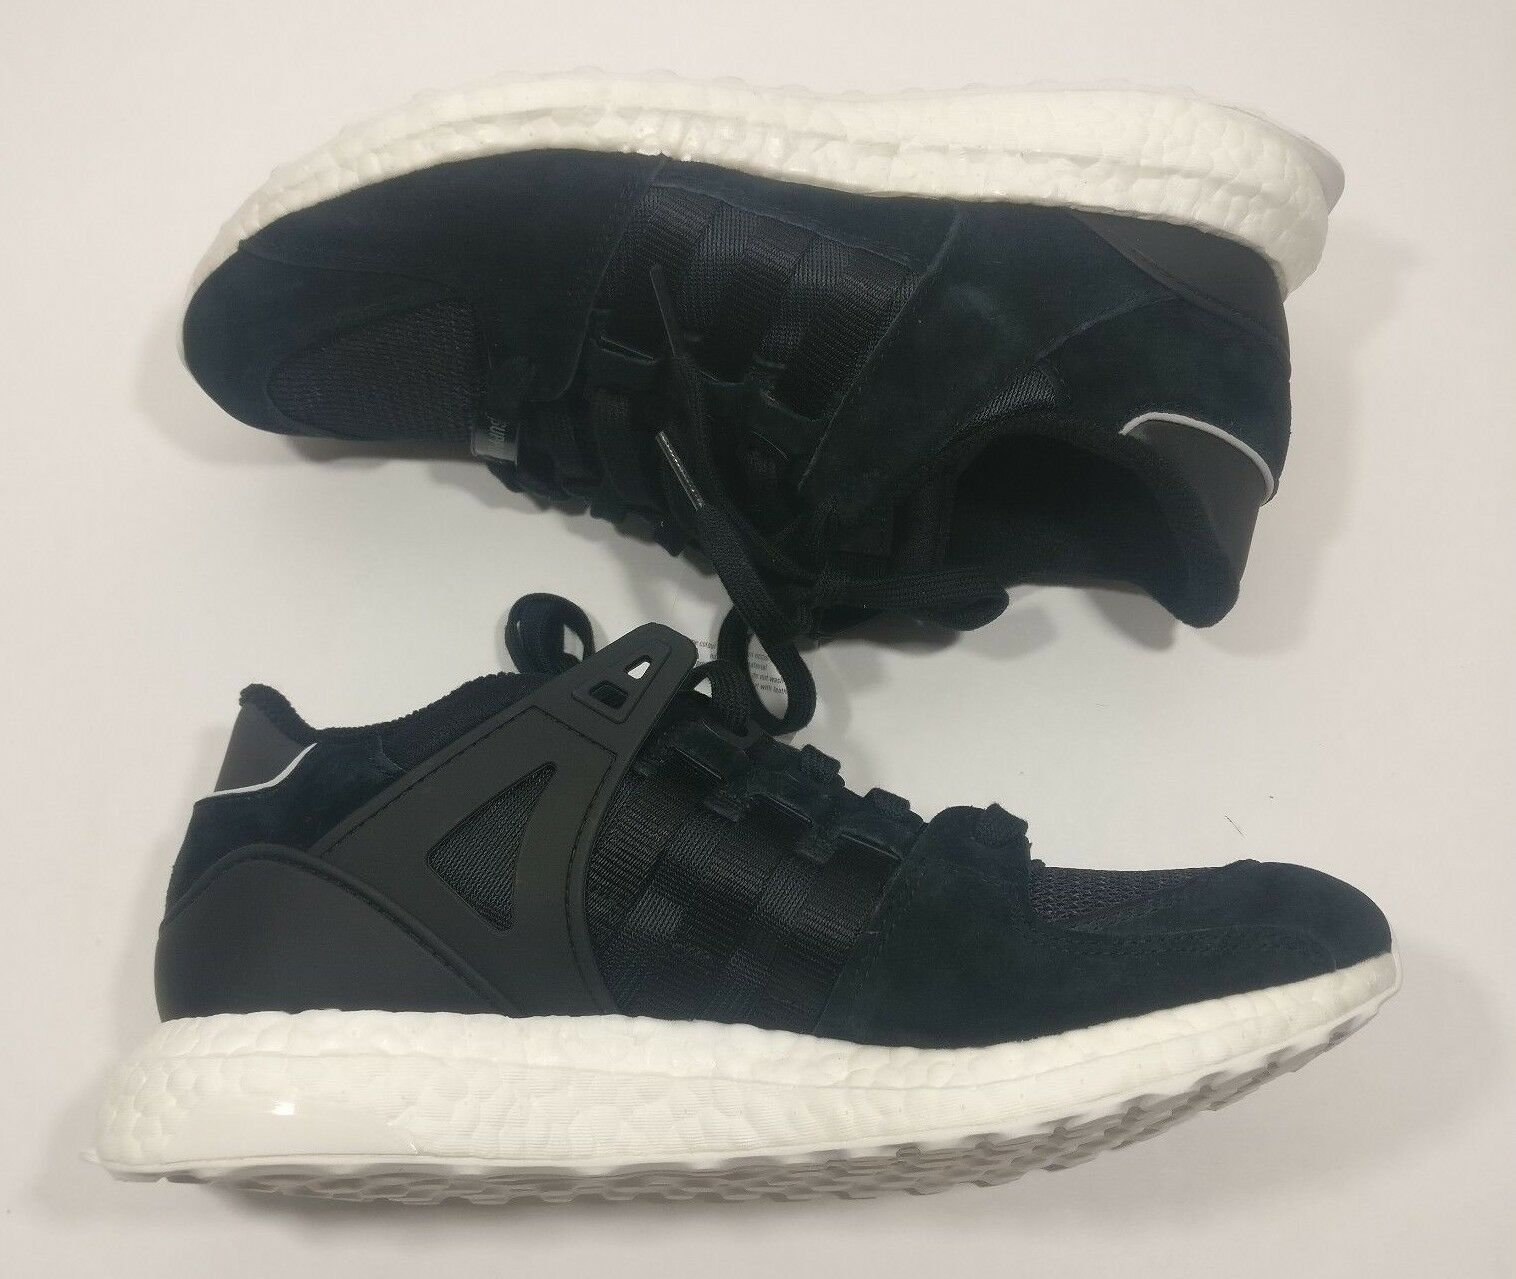 Mens Adidas EQT Support Ultra Boost Sole 93 16 OG Black Laces Size 7.5 (BY9148)